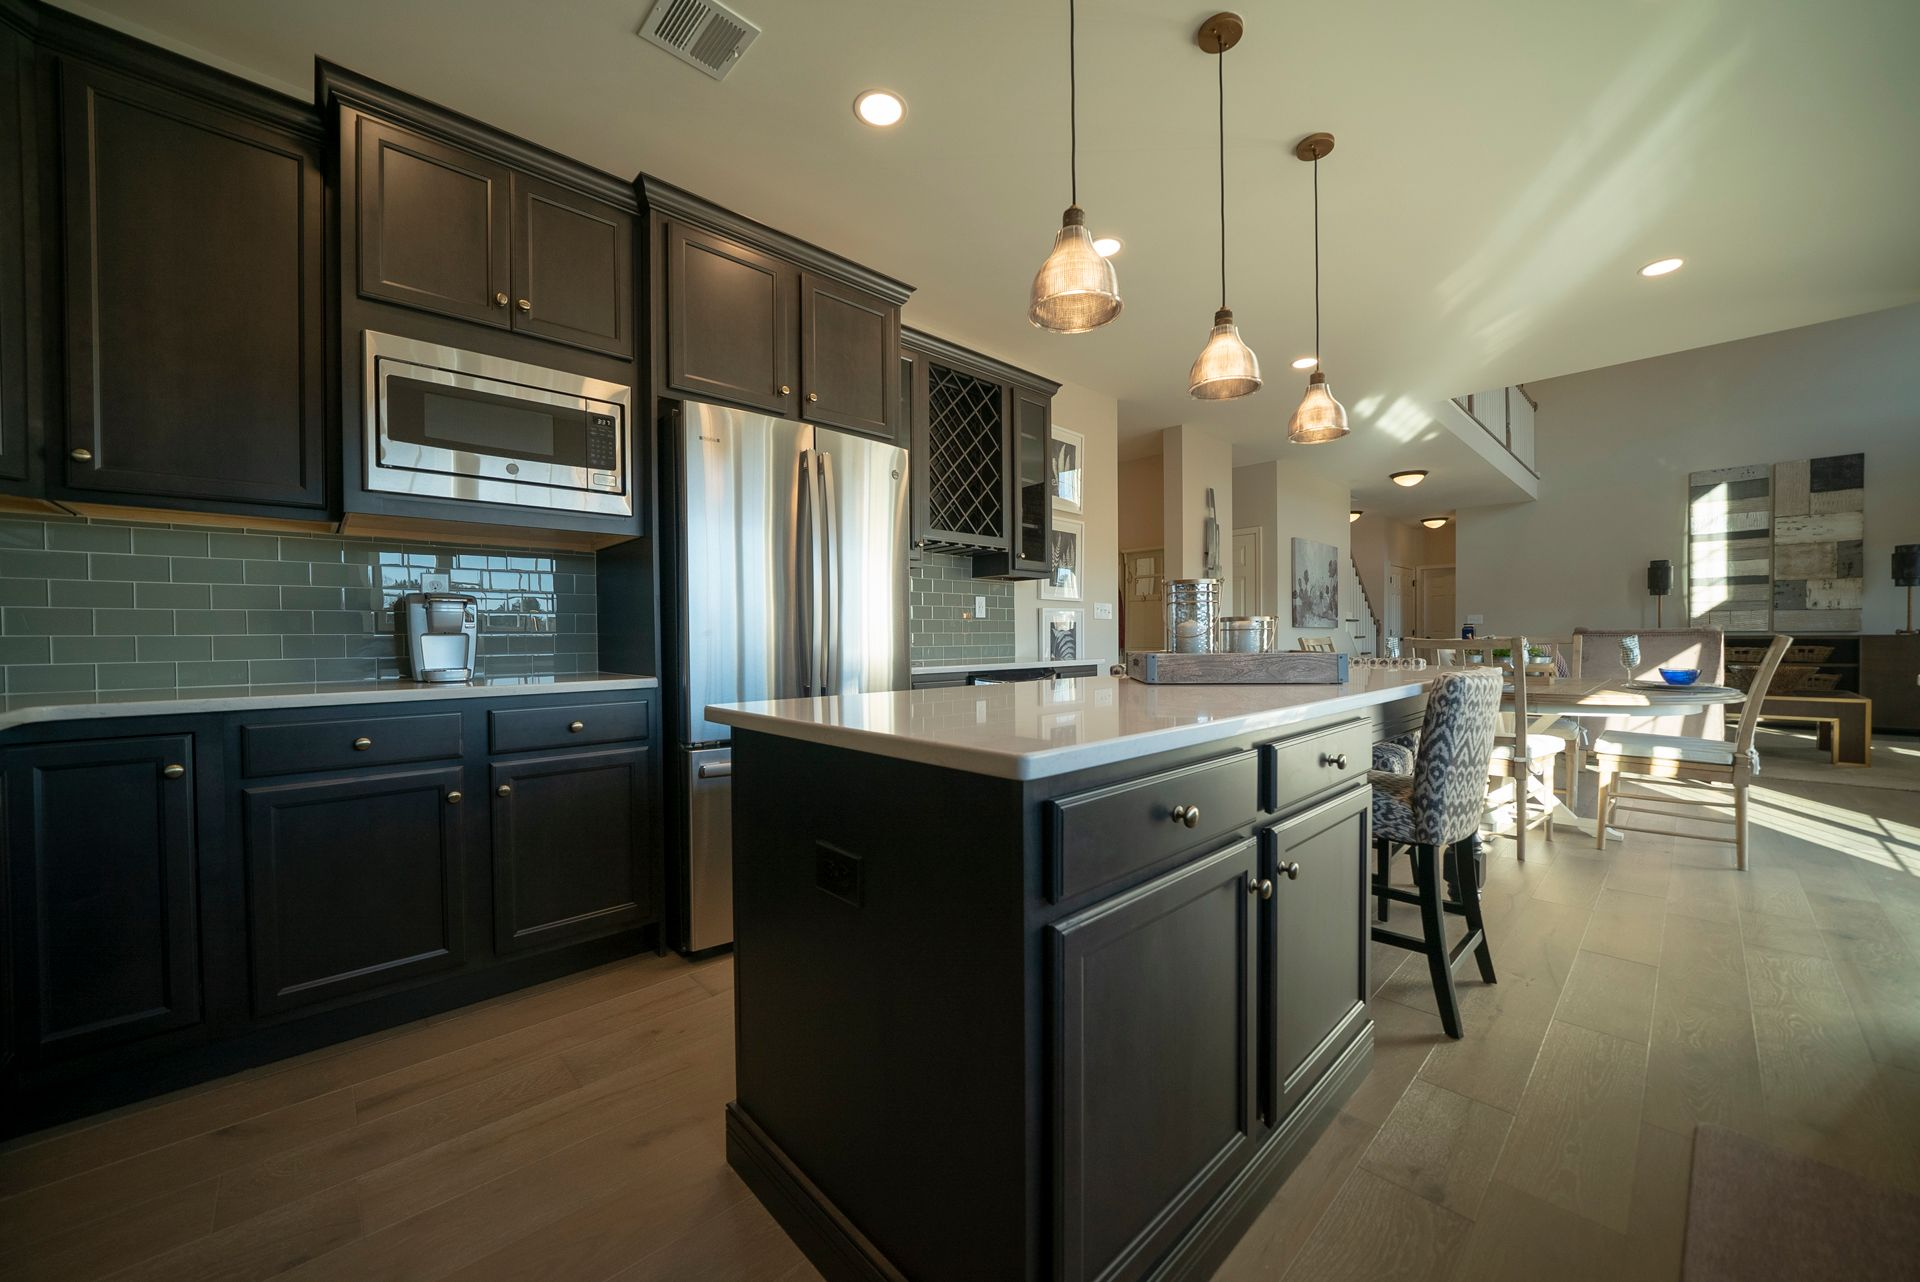 Kitchen featured in the Breckenridge Grande Traditional By Tuskes Homes - Infill